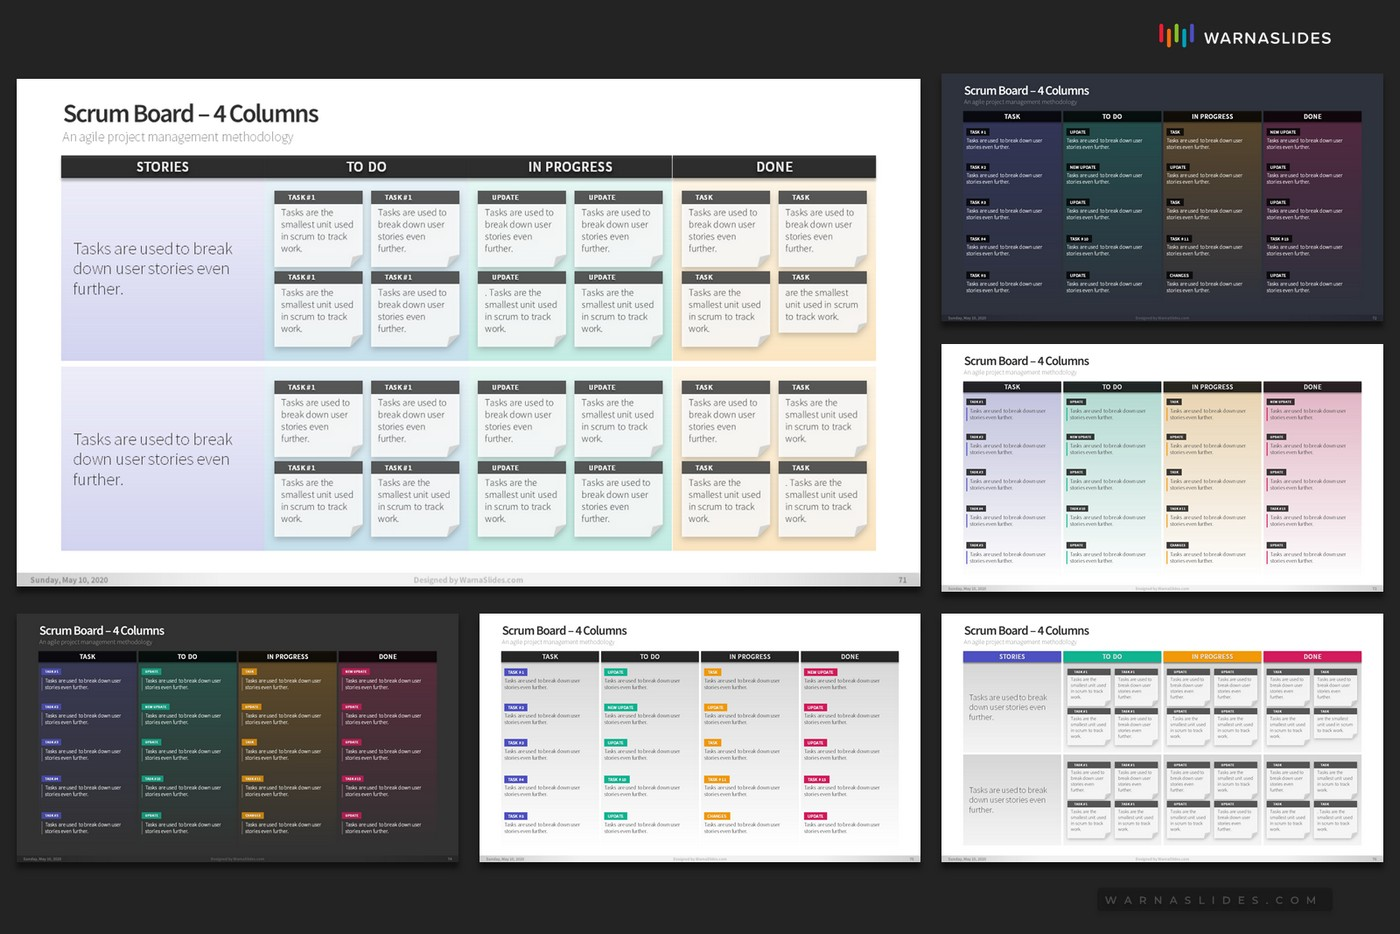 Agile-Scrum-Framework-Scrum-Process-Diagram-PowerPoint-Template-for-Business-Pitch-Deck-Professional-Creative-PowerPoint-Icons-021